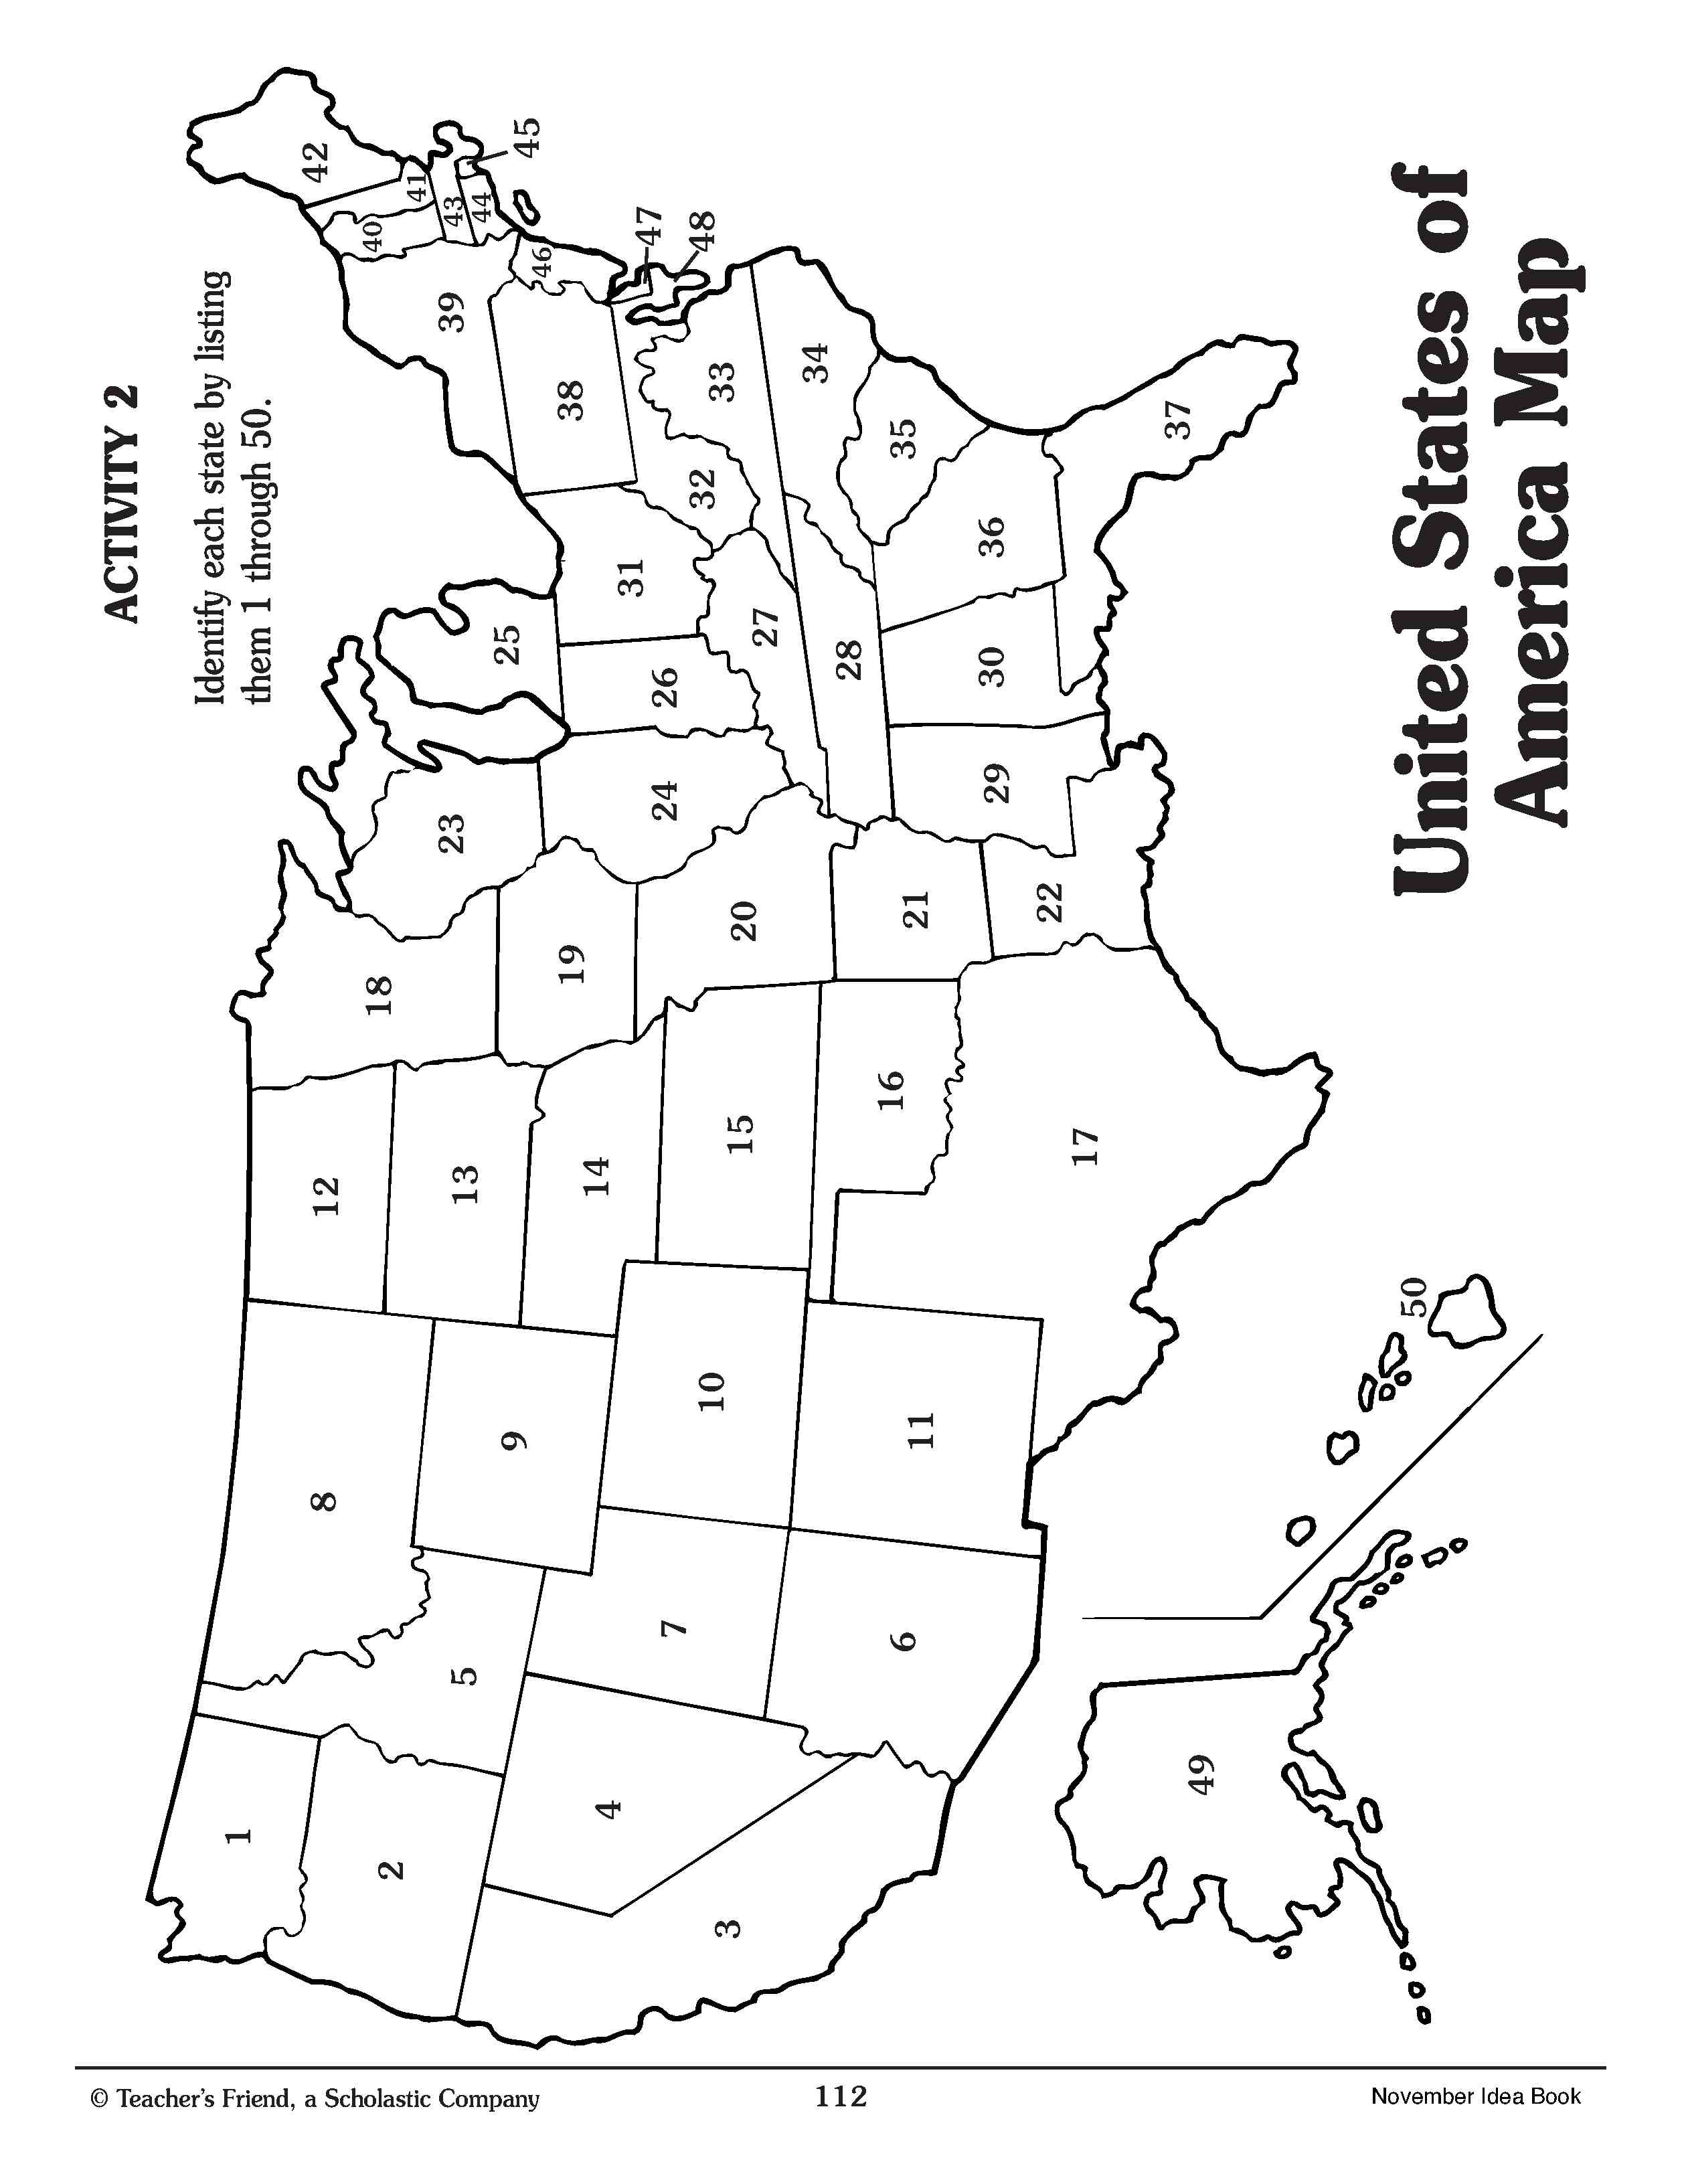 State map coloring pages download and print for free for Maps coloring pages